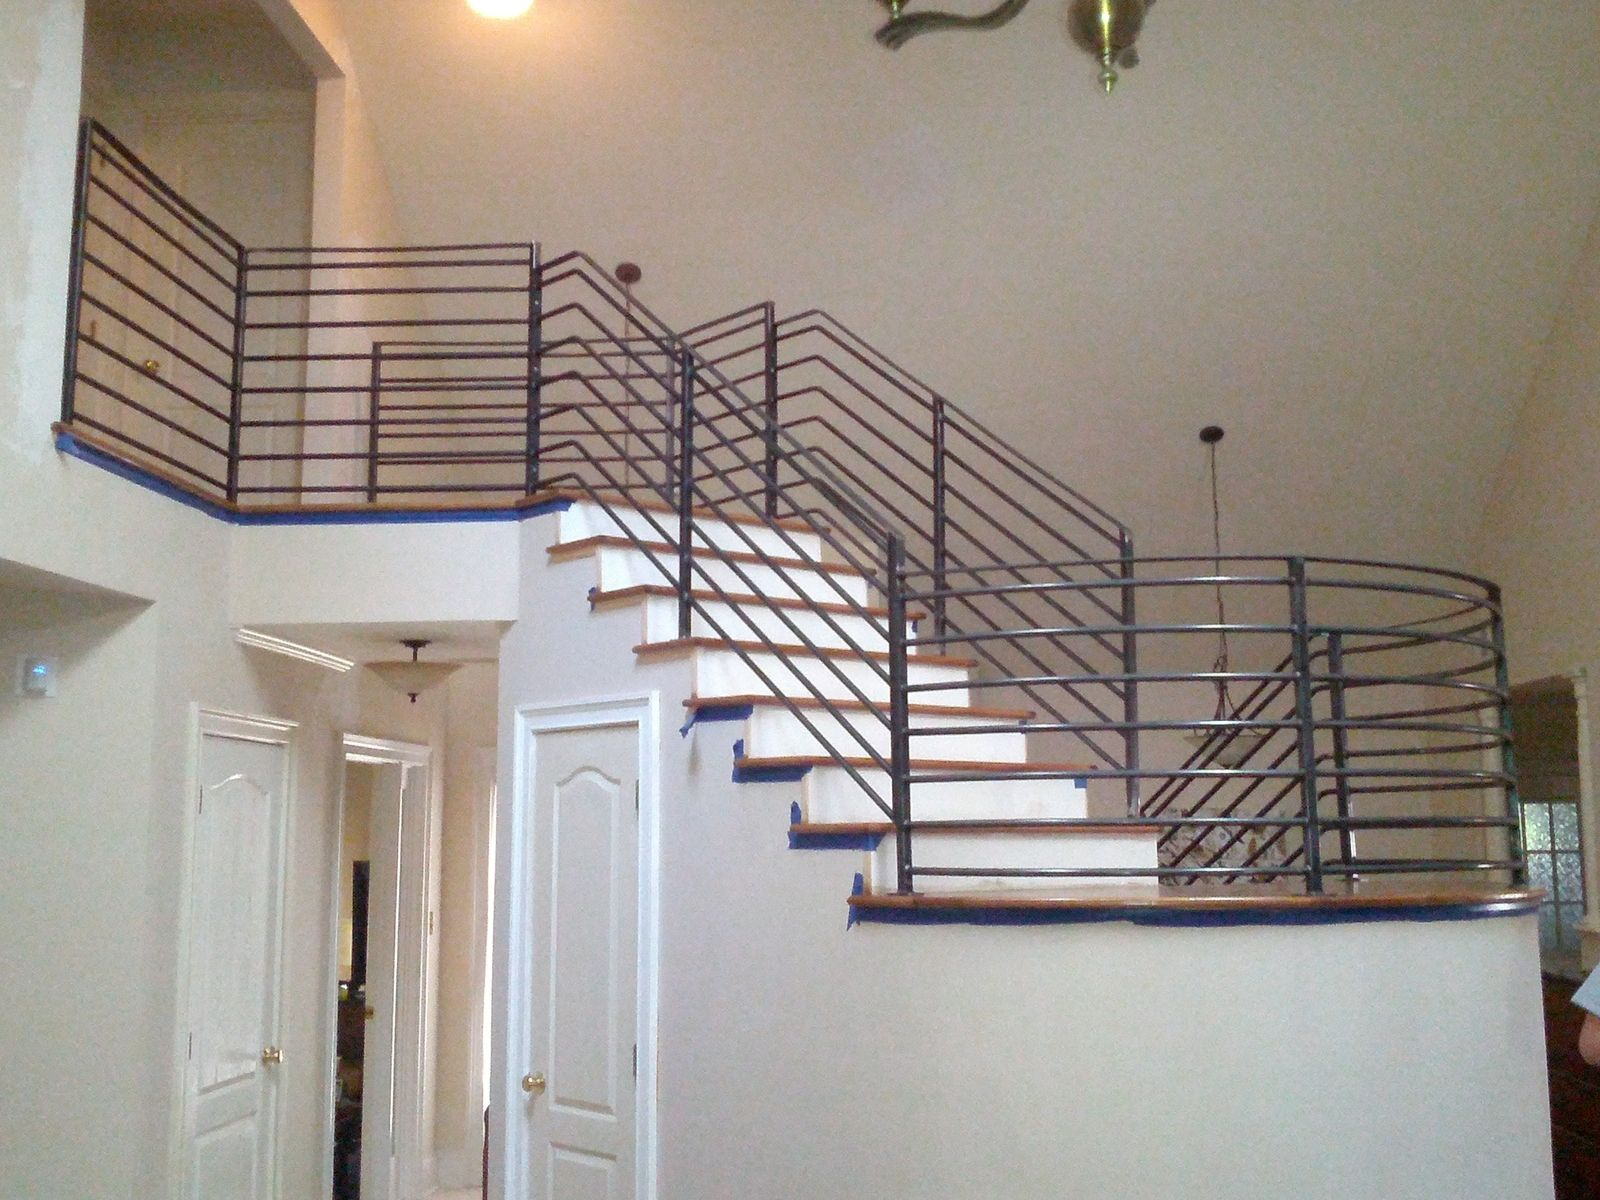 ... decor hardware installations railings handrails interior stair railing